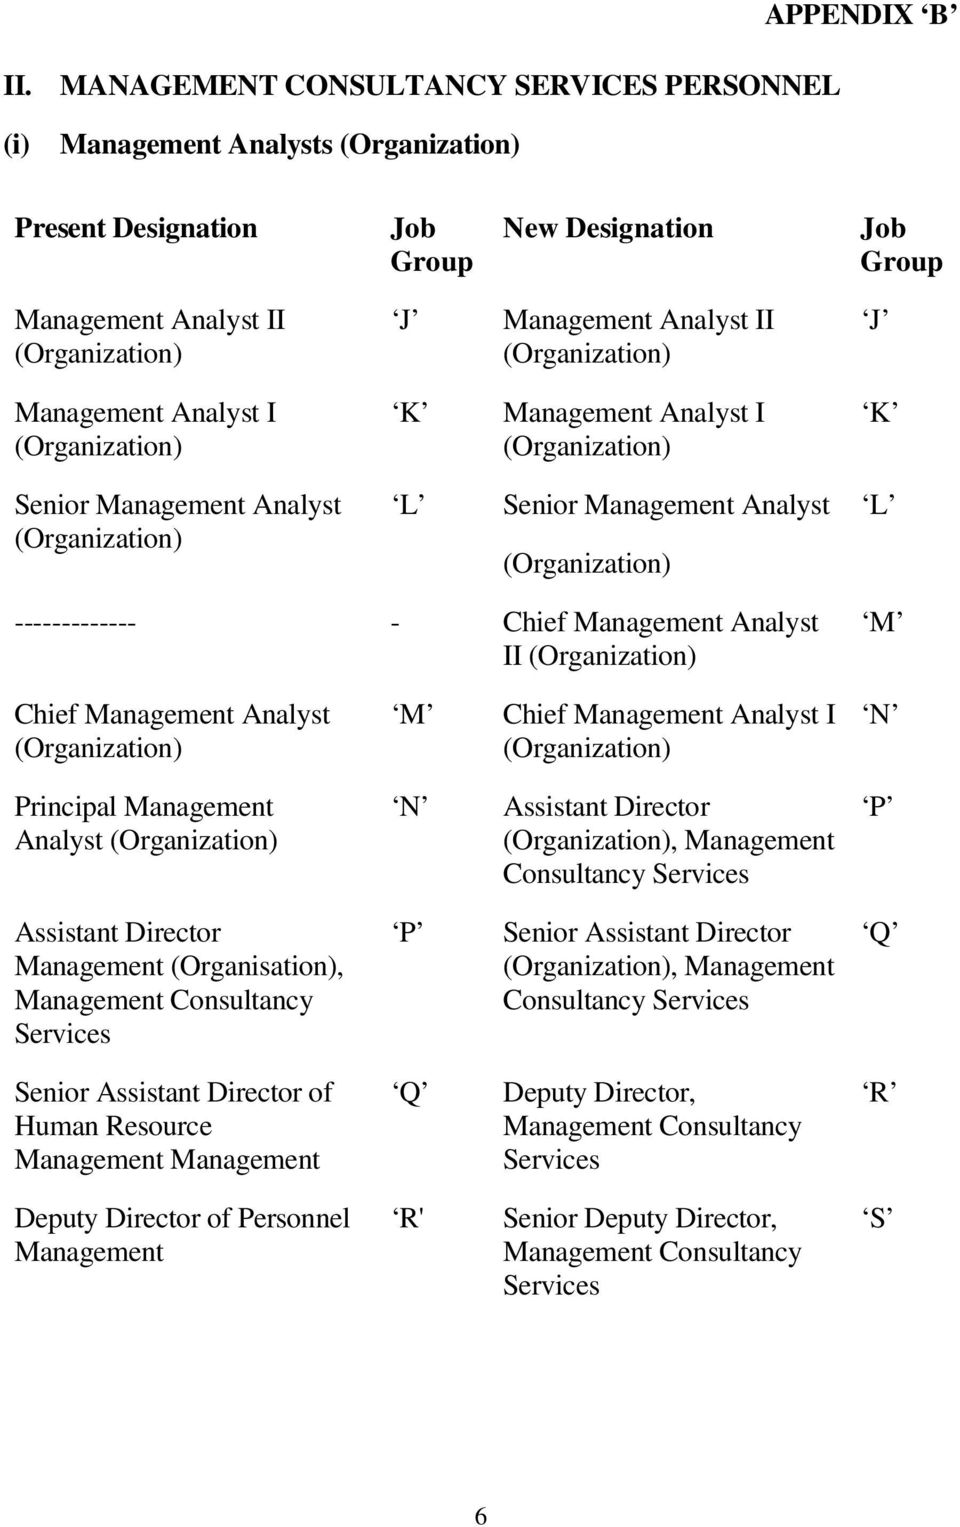 L ------------- - Chief Management Analyst II (Organization) M Chief Management Analyst (Organization) M Chief Management Analyst I (Organization) N Principal Management Analyst (Organization) N